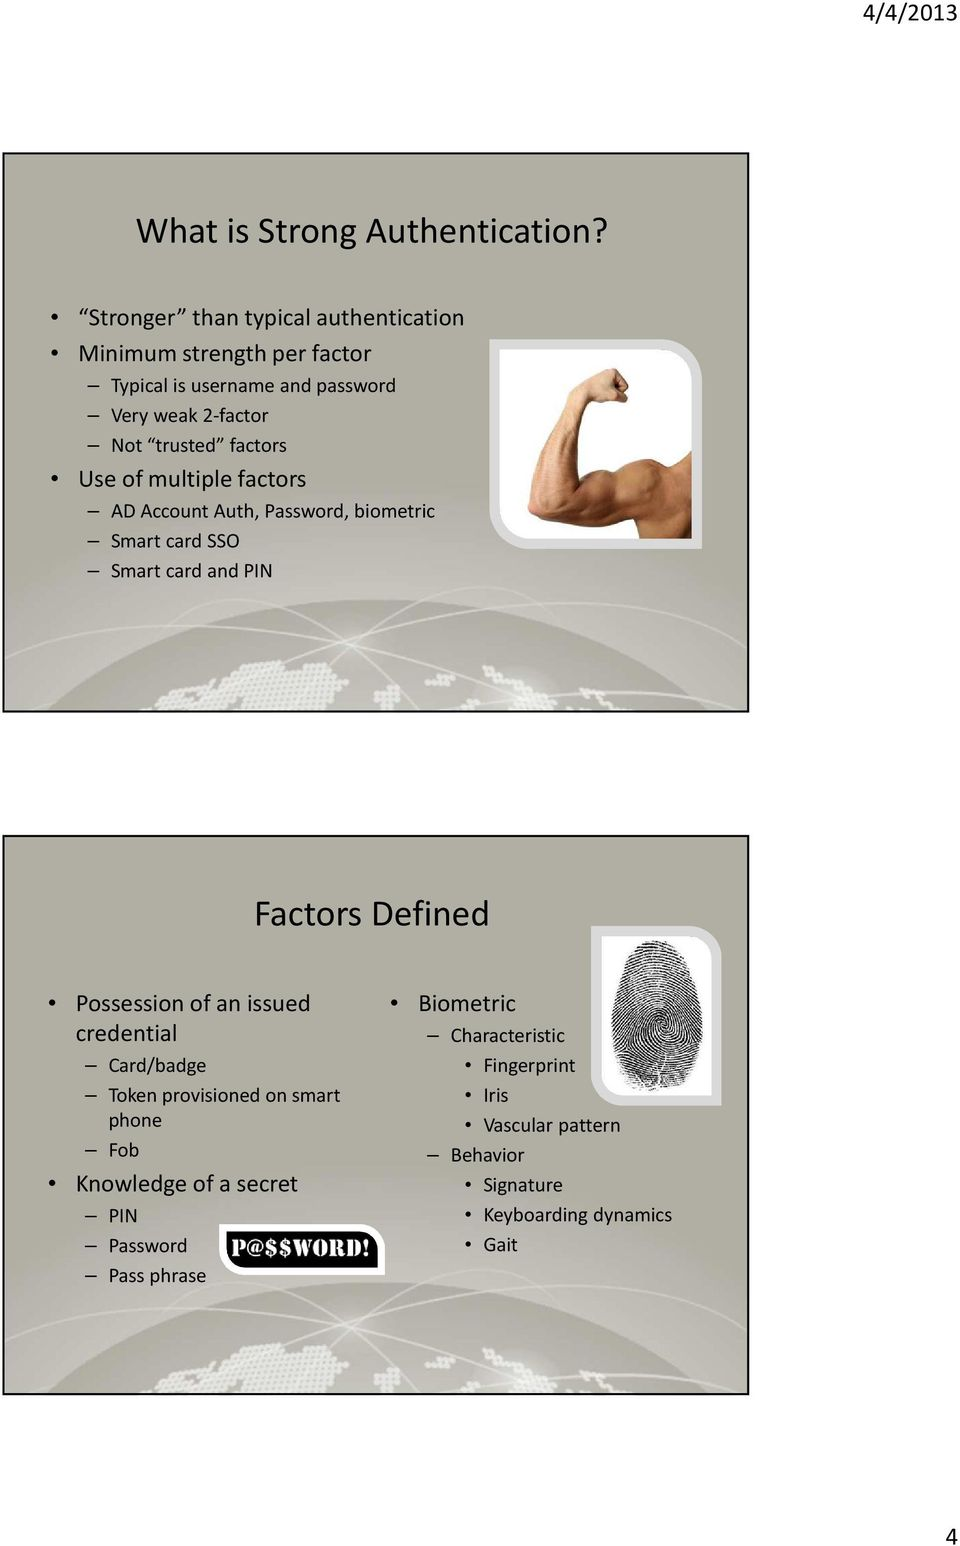 factors Use of multiple factors AD Account Auth, Password, biometric Smart card SSO Smart card and PIN Factors Defined